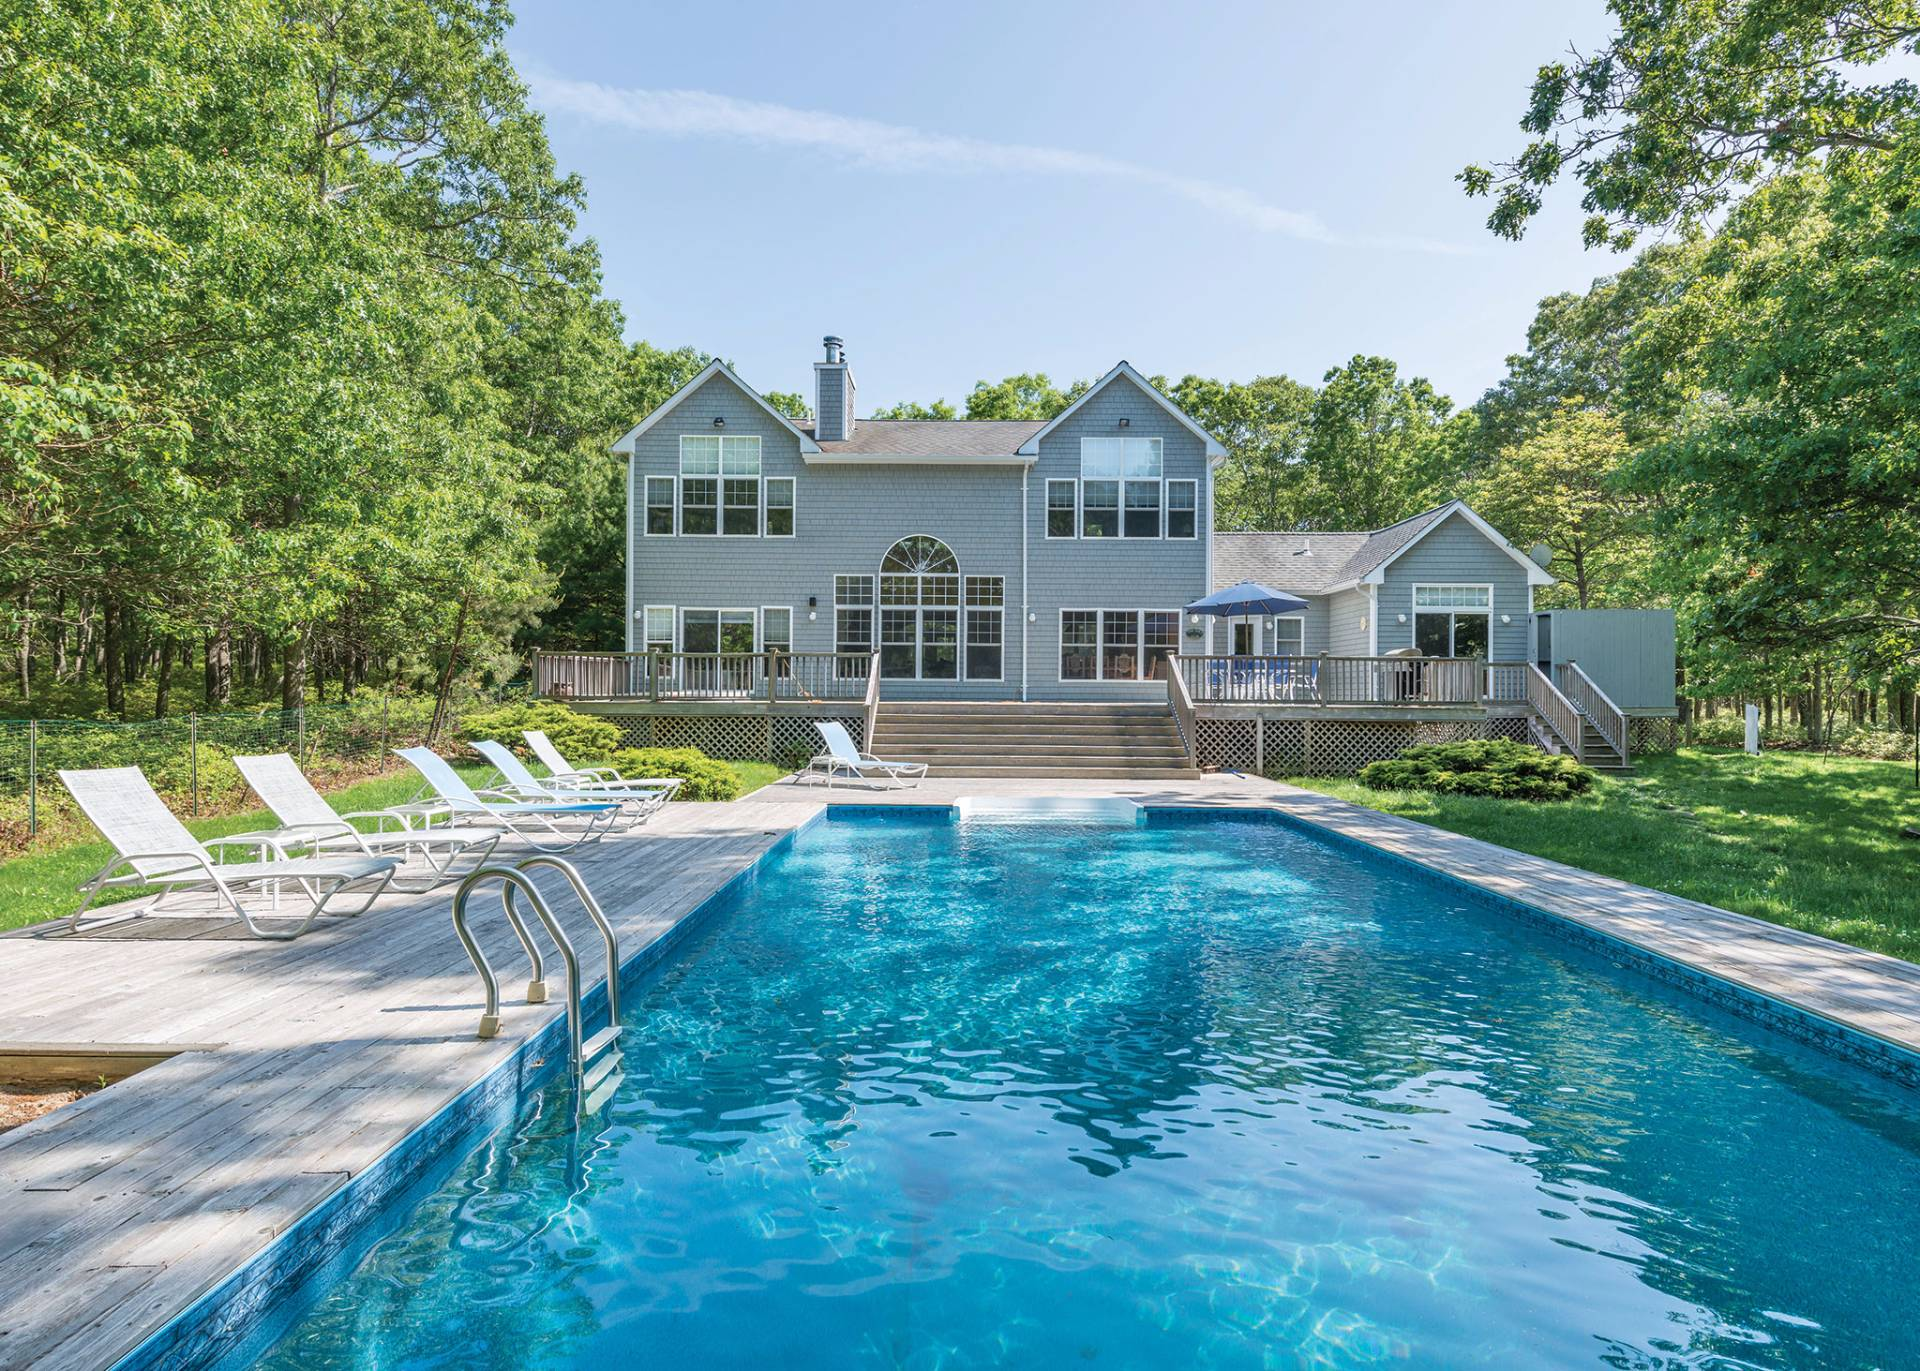 Casa Unifamiliar por un Venta en 5+ Acres With Pool, Tennis, Privacy And So Much More! 528 Wainscott Northwest Road, Wainscott, Nueva York